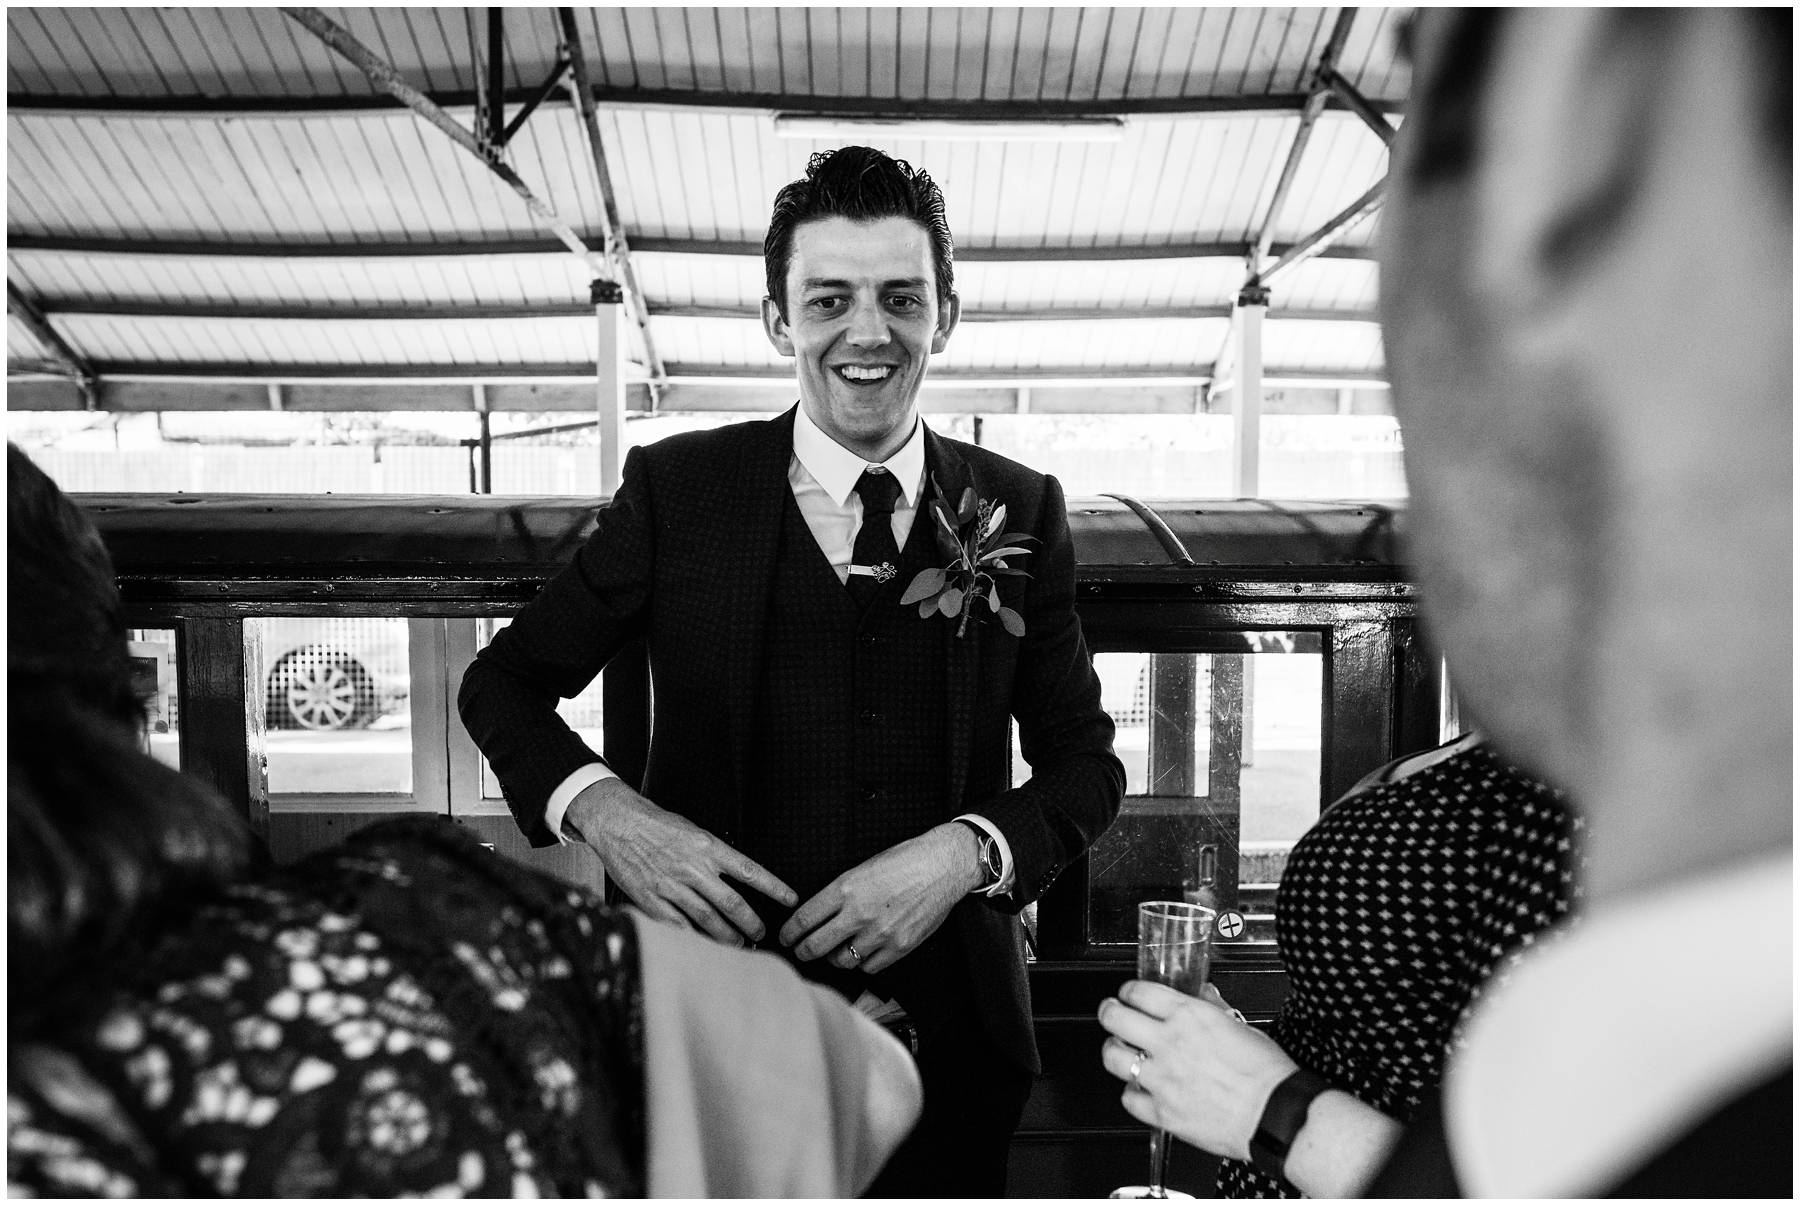 Reportage Wedding Photography on a mini railway